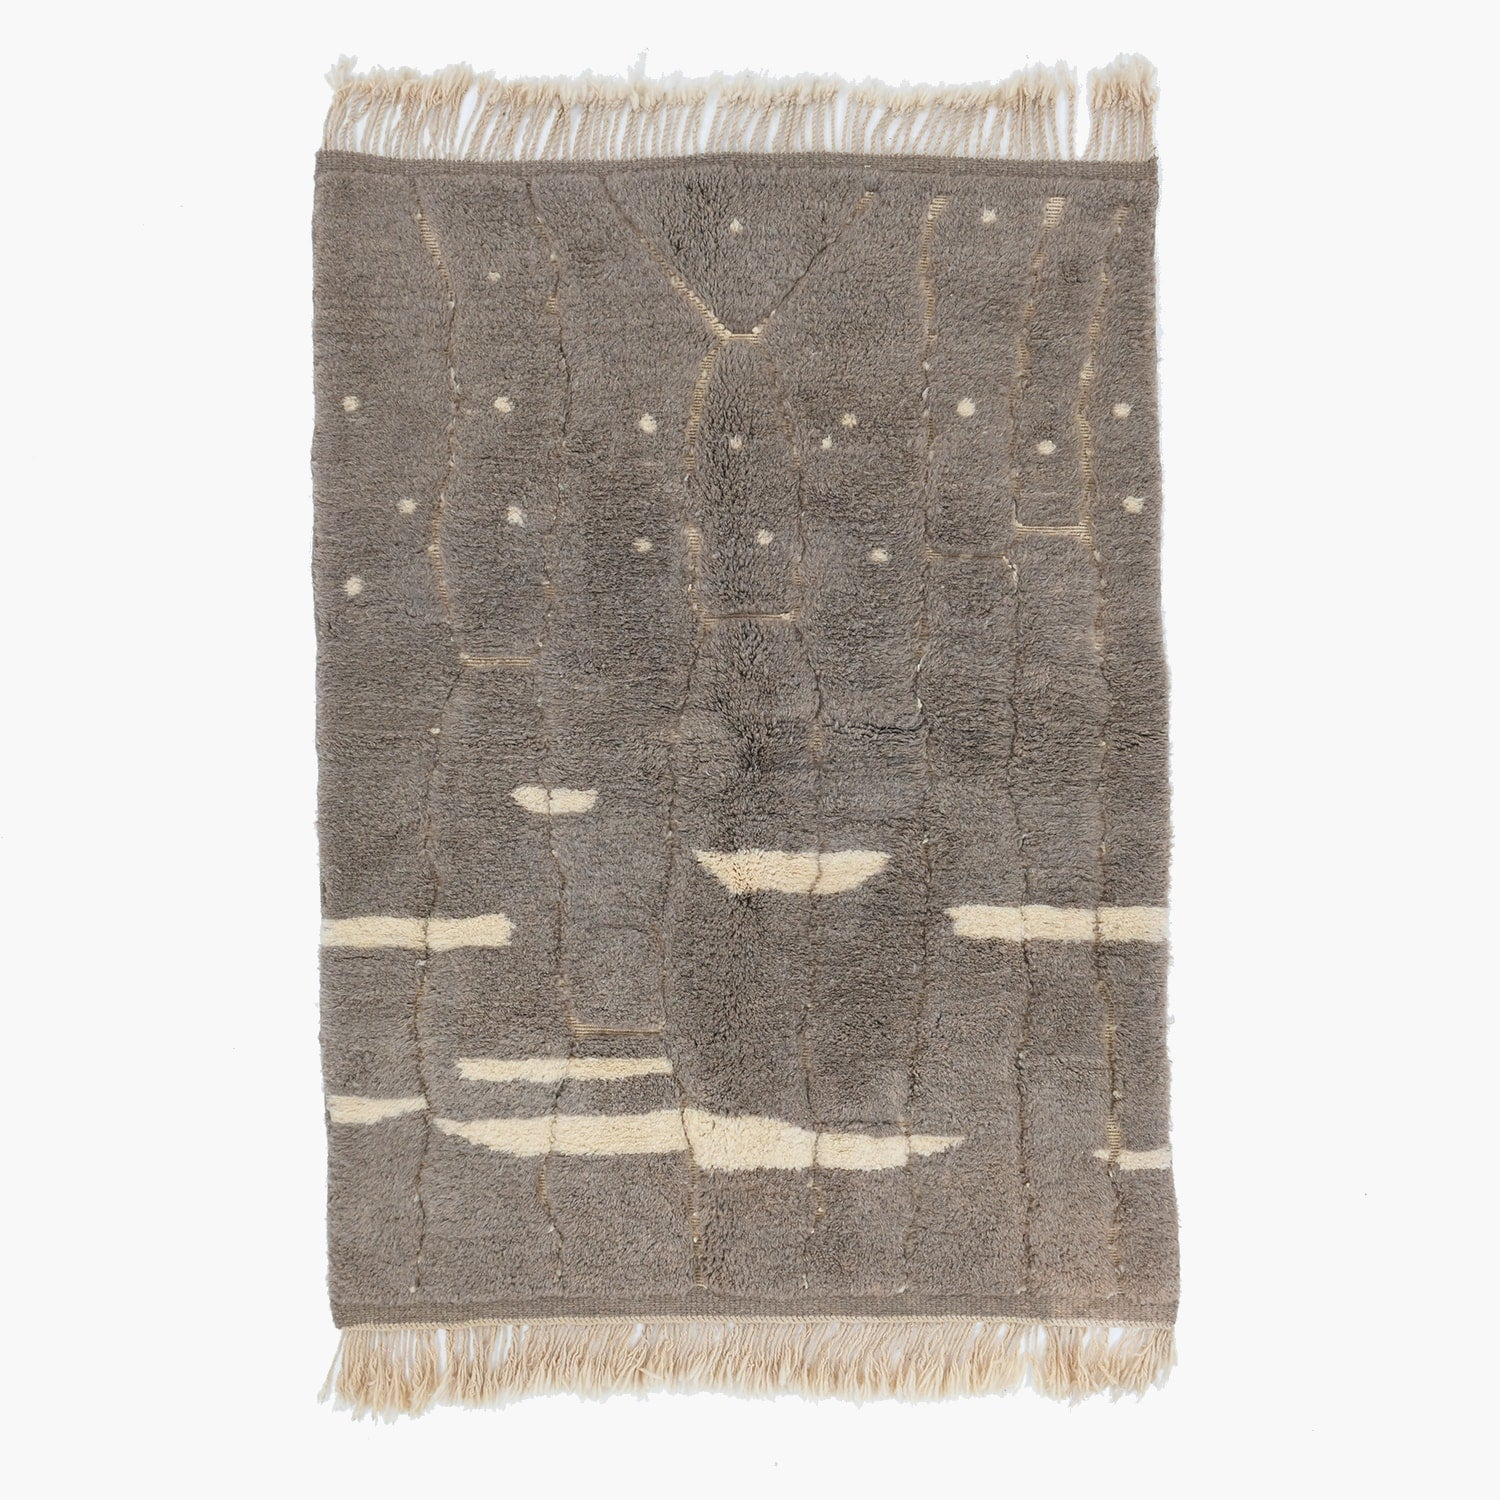 Luxury Mrirt rug 4.9 x 7.8 ft / 150 x 240 cm - BENISOUK